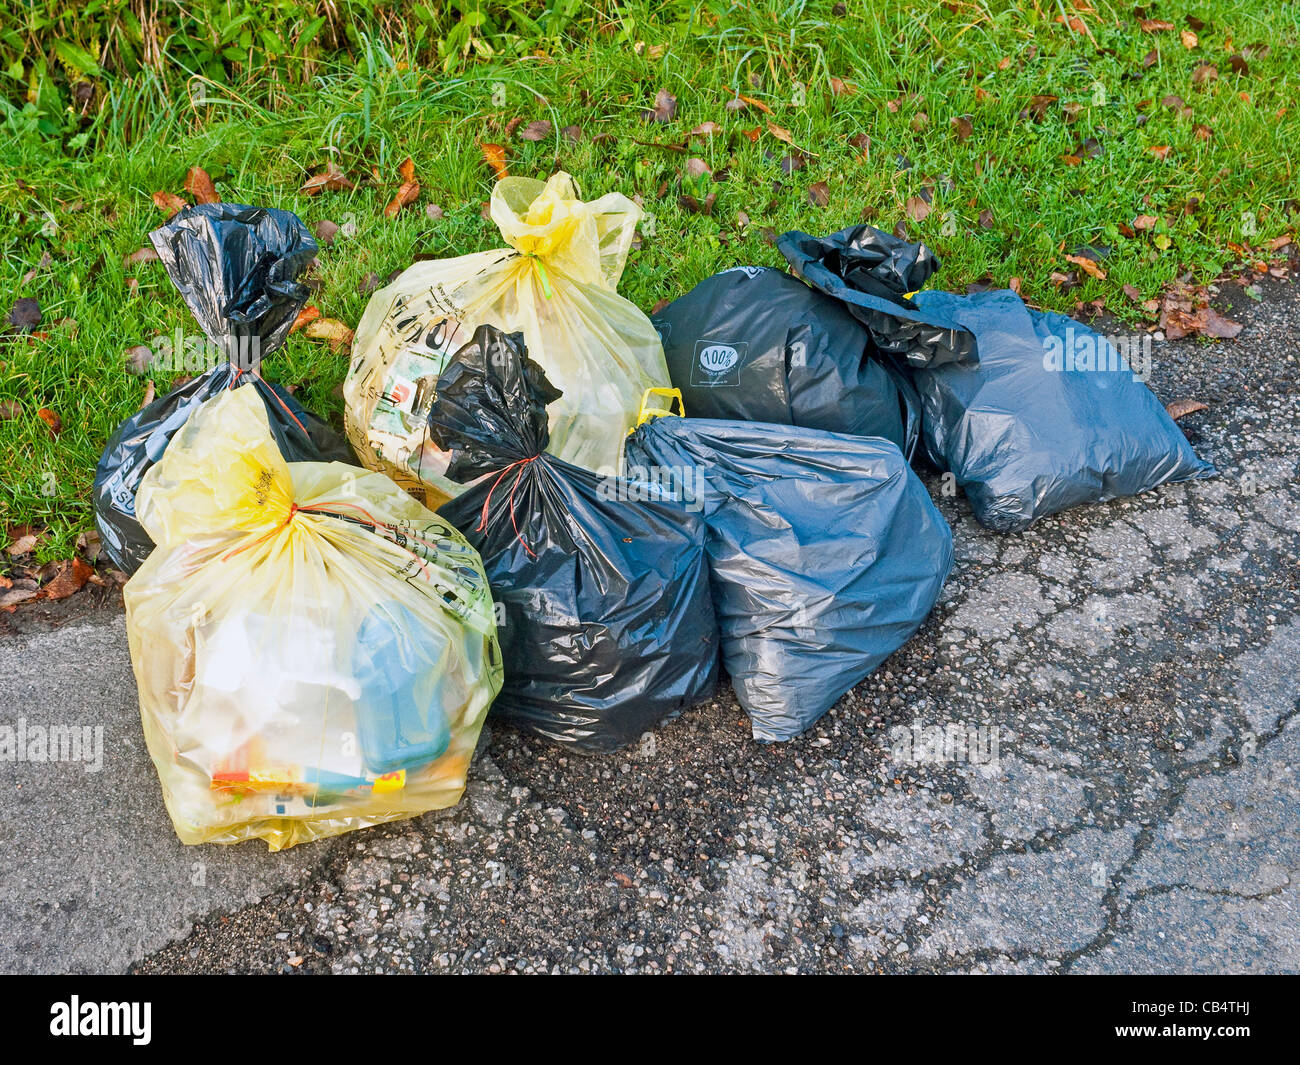 Household rubbish plastic sacks awaiting weekly collection - France. - Stock Image